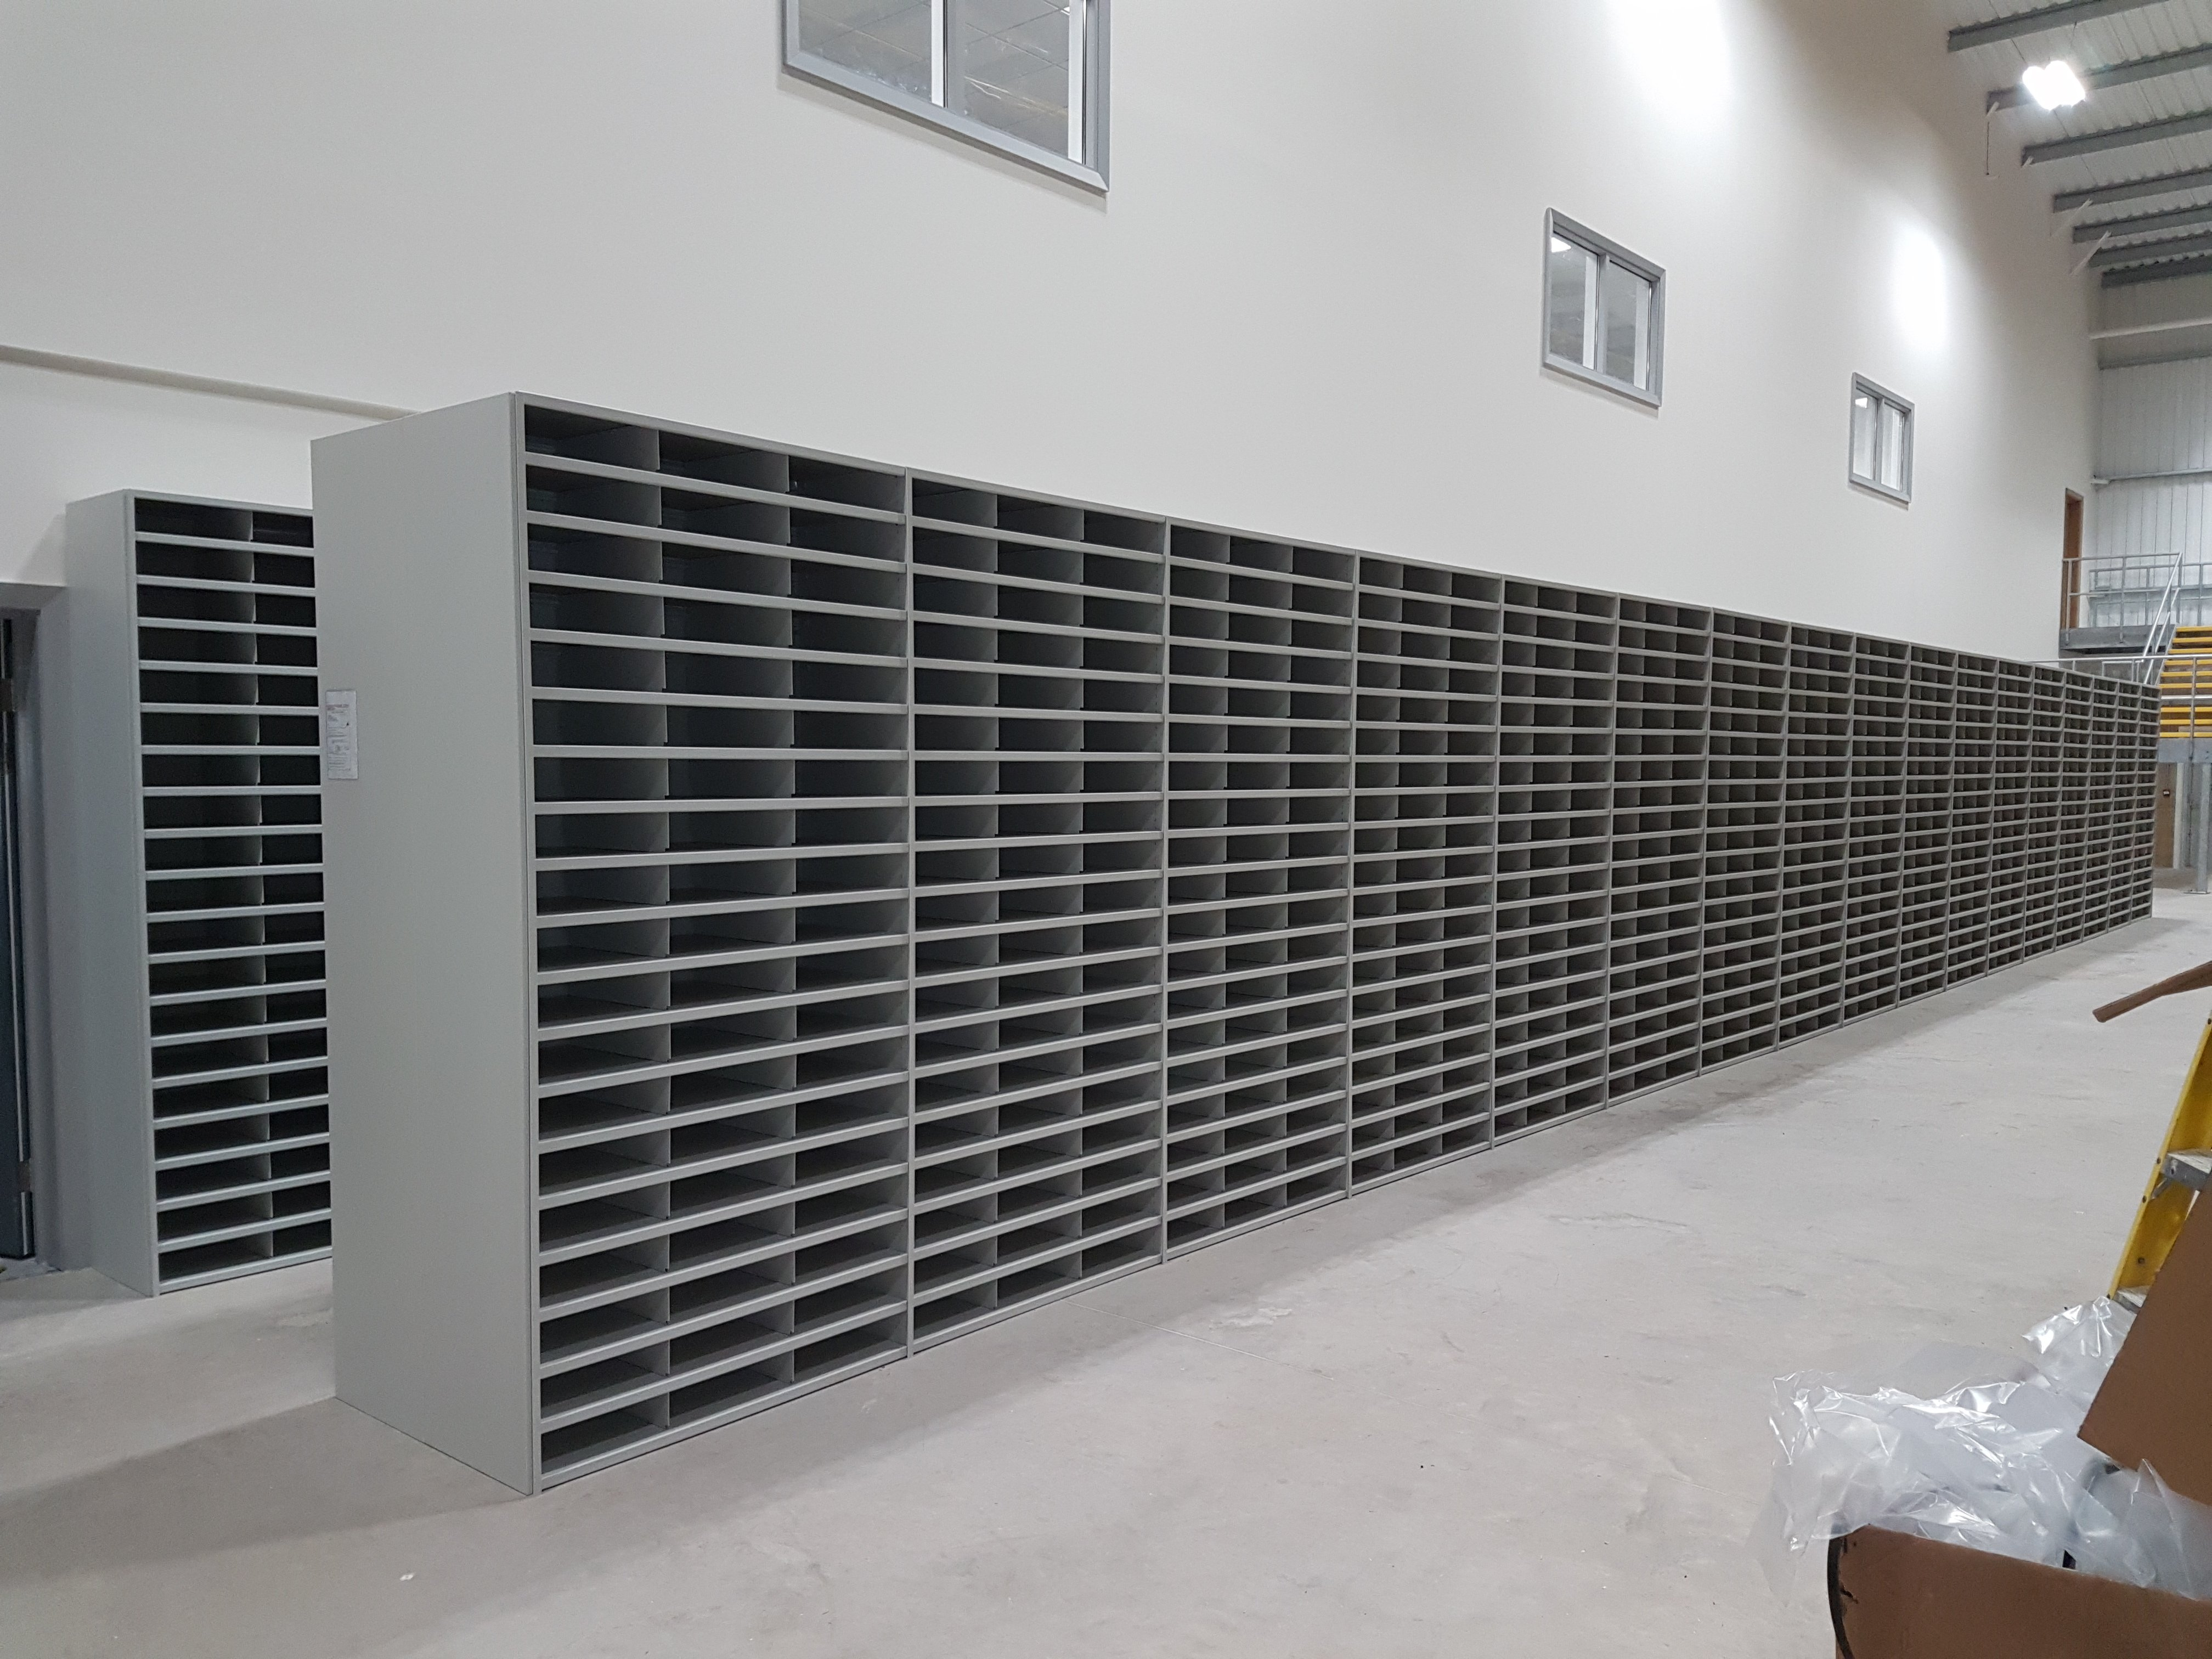 Somerset Storage Installations